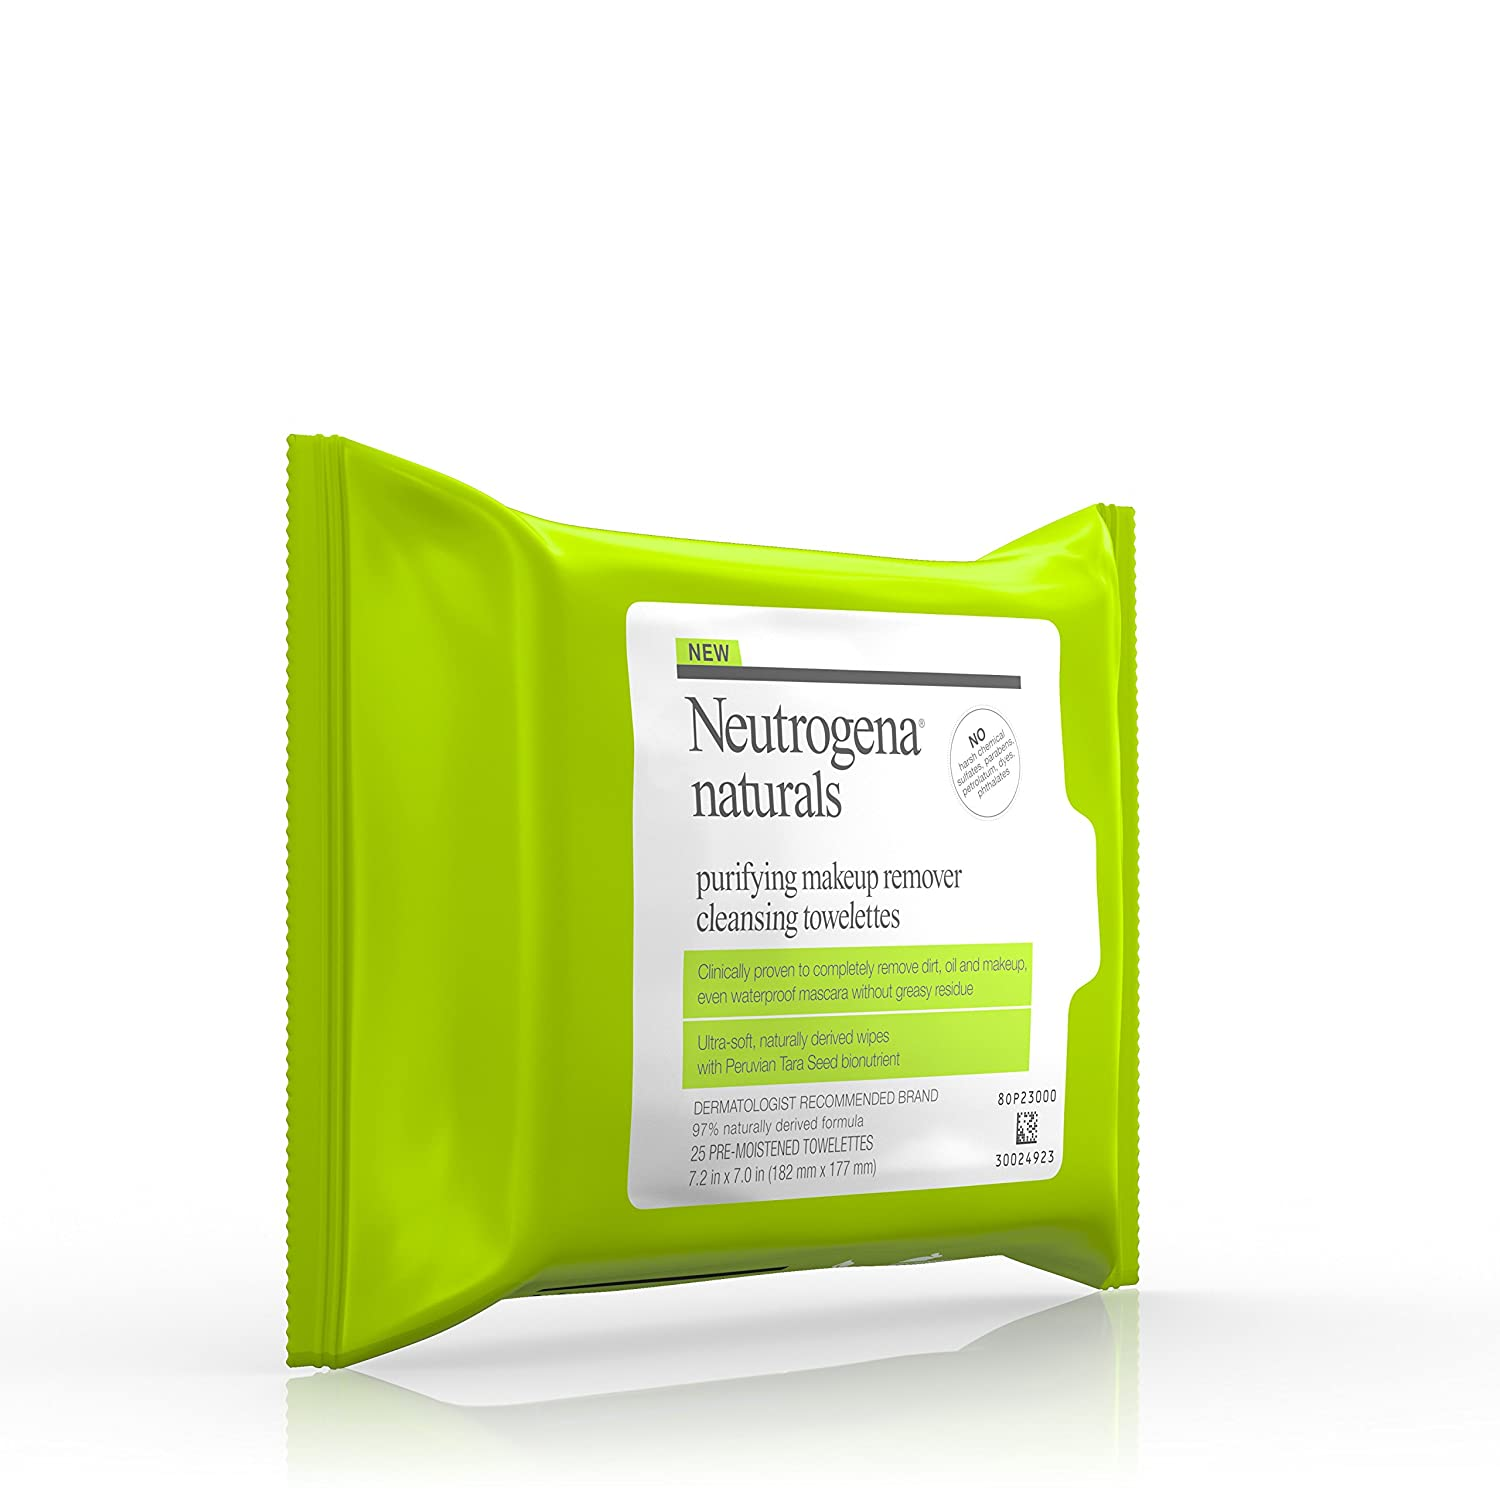 Neutrogena Naturals Purifying Makeup Remover Cleansing Towelettes 25 ea (Pack of 2) Weleda Gentle Cleansing Milk, 3.4-Fluid Ounce